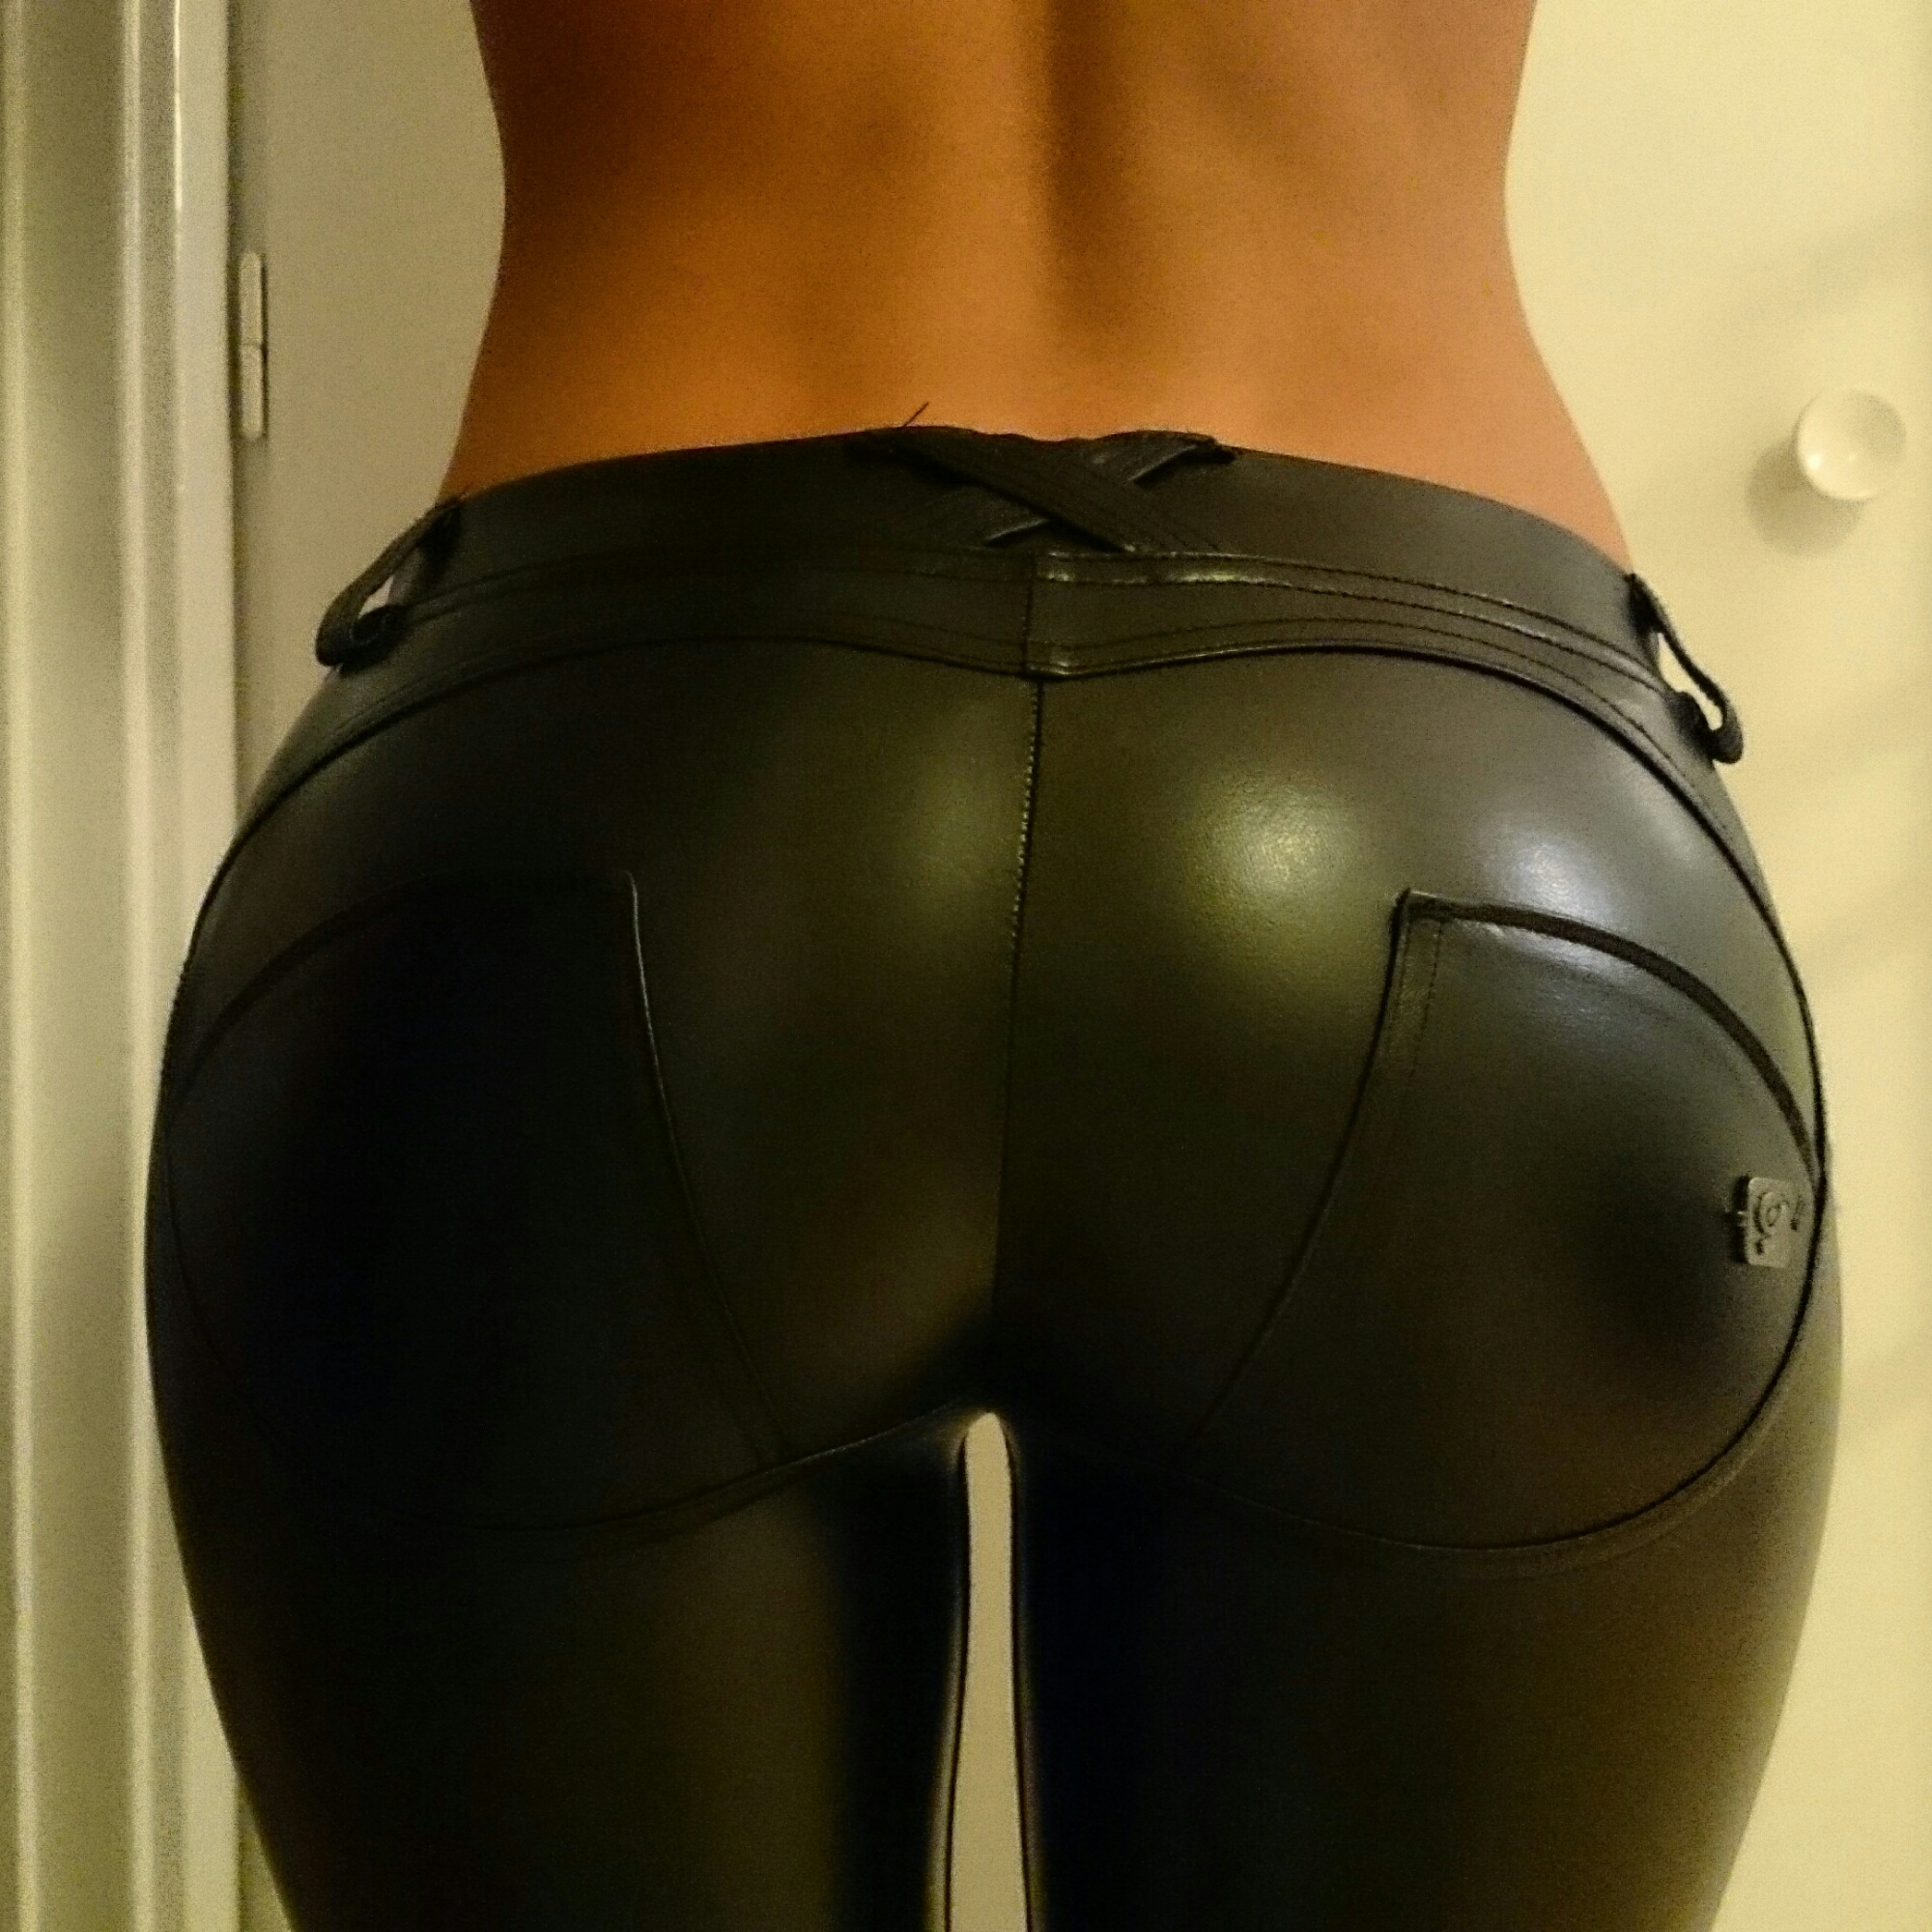 Latex Up The Ass Pics 24